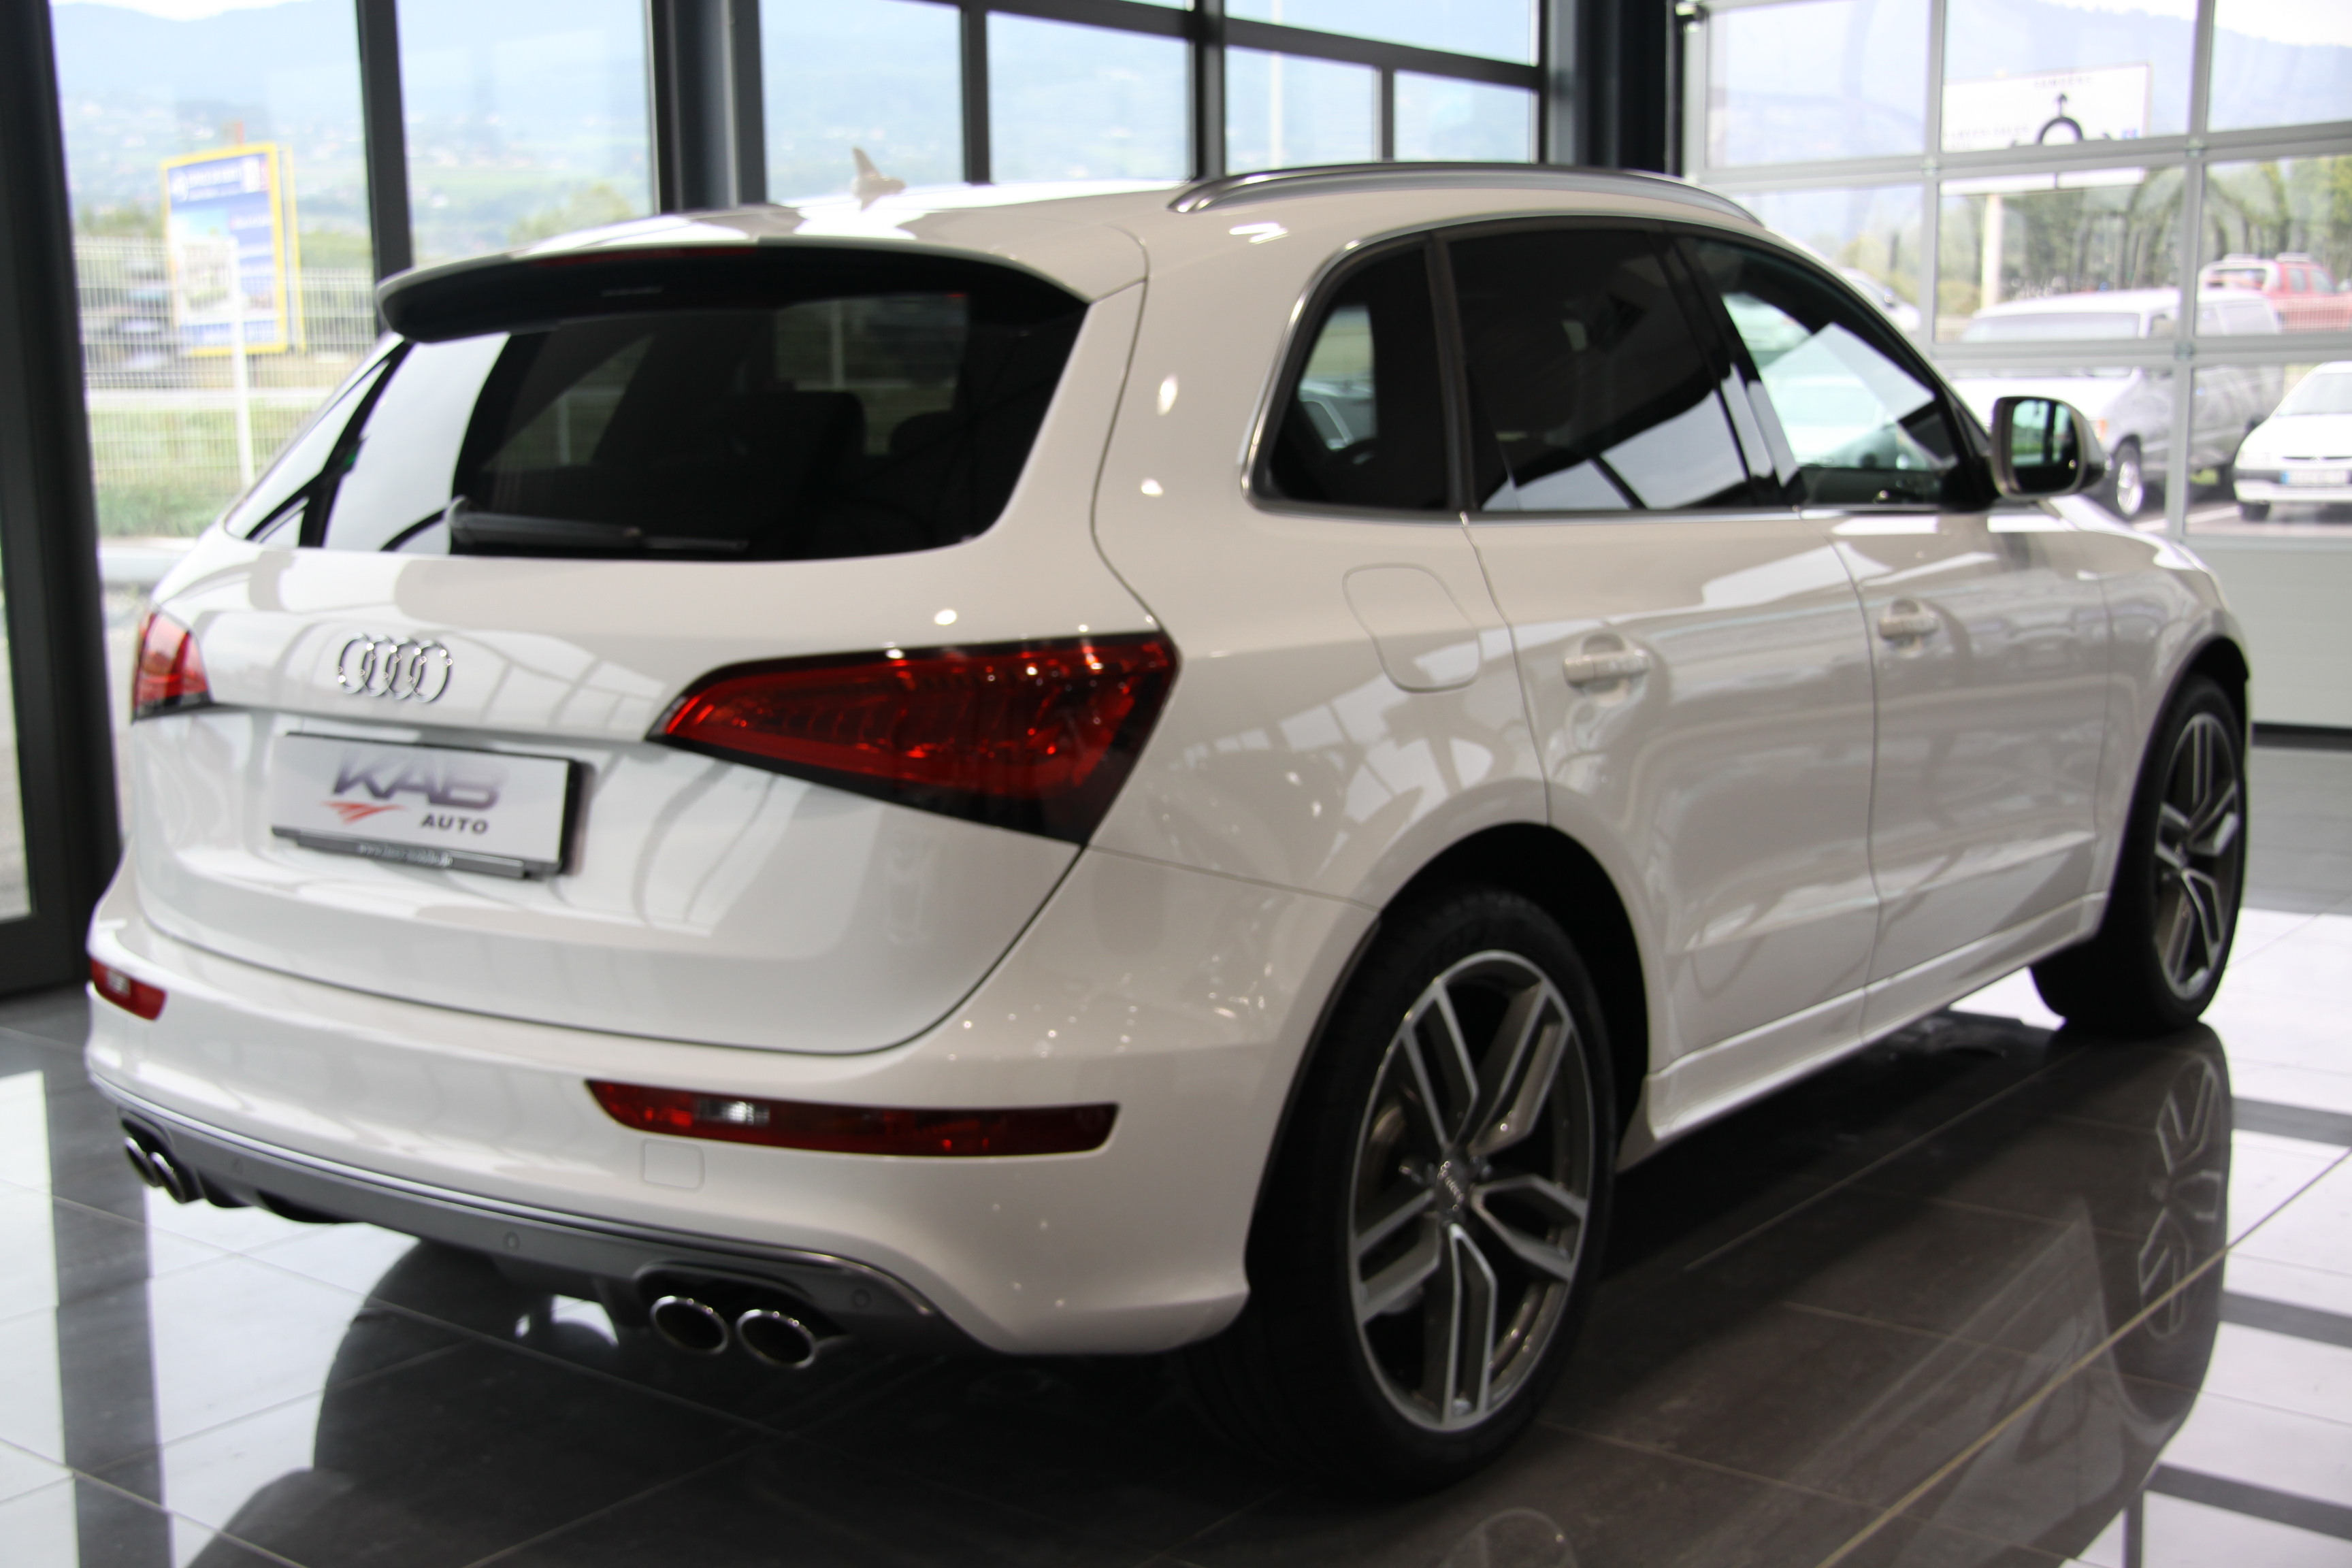 audi sq5 3 0 tdi quattro 313 kab auto centre auto de borly 74 cranves sales annemasse. Black Bedroom Furniture Sets. Home Design Ideas